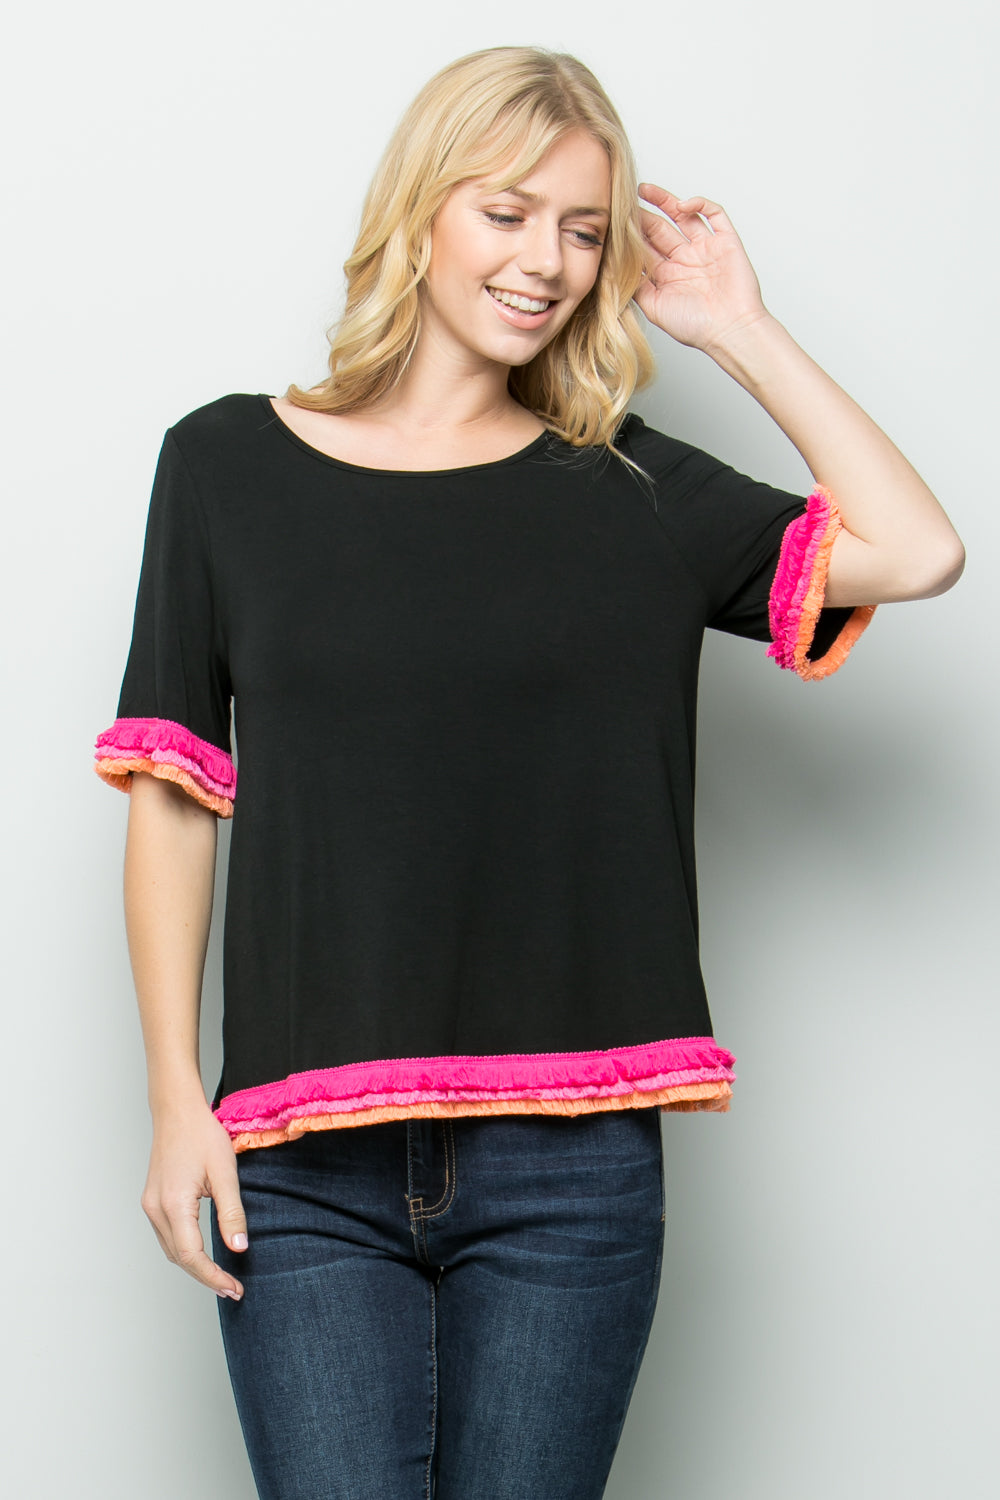 T2667 Sleeve trim detail knit Top